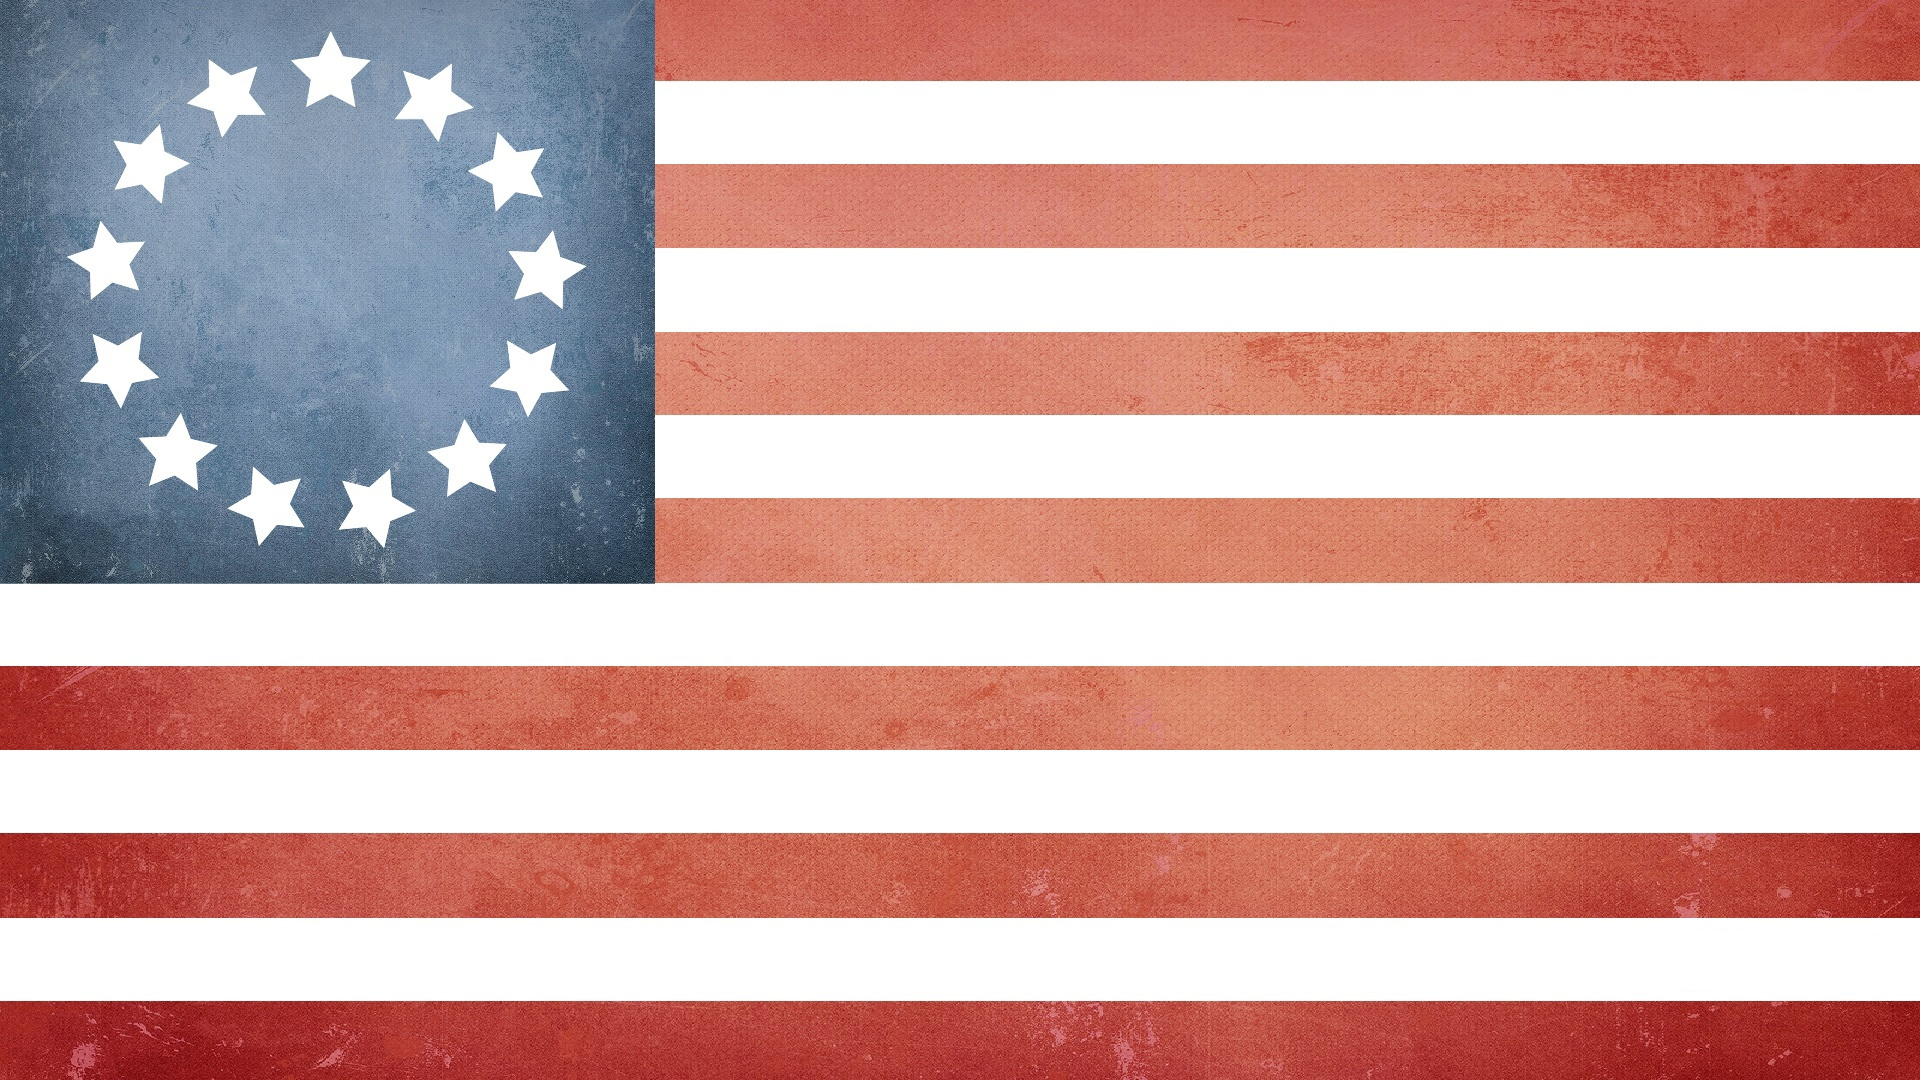 Colony us flag clipart freeuse library old american flag - Google Search | POSTER BOARD | Pinterest ... freeuse library